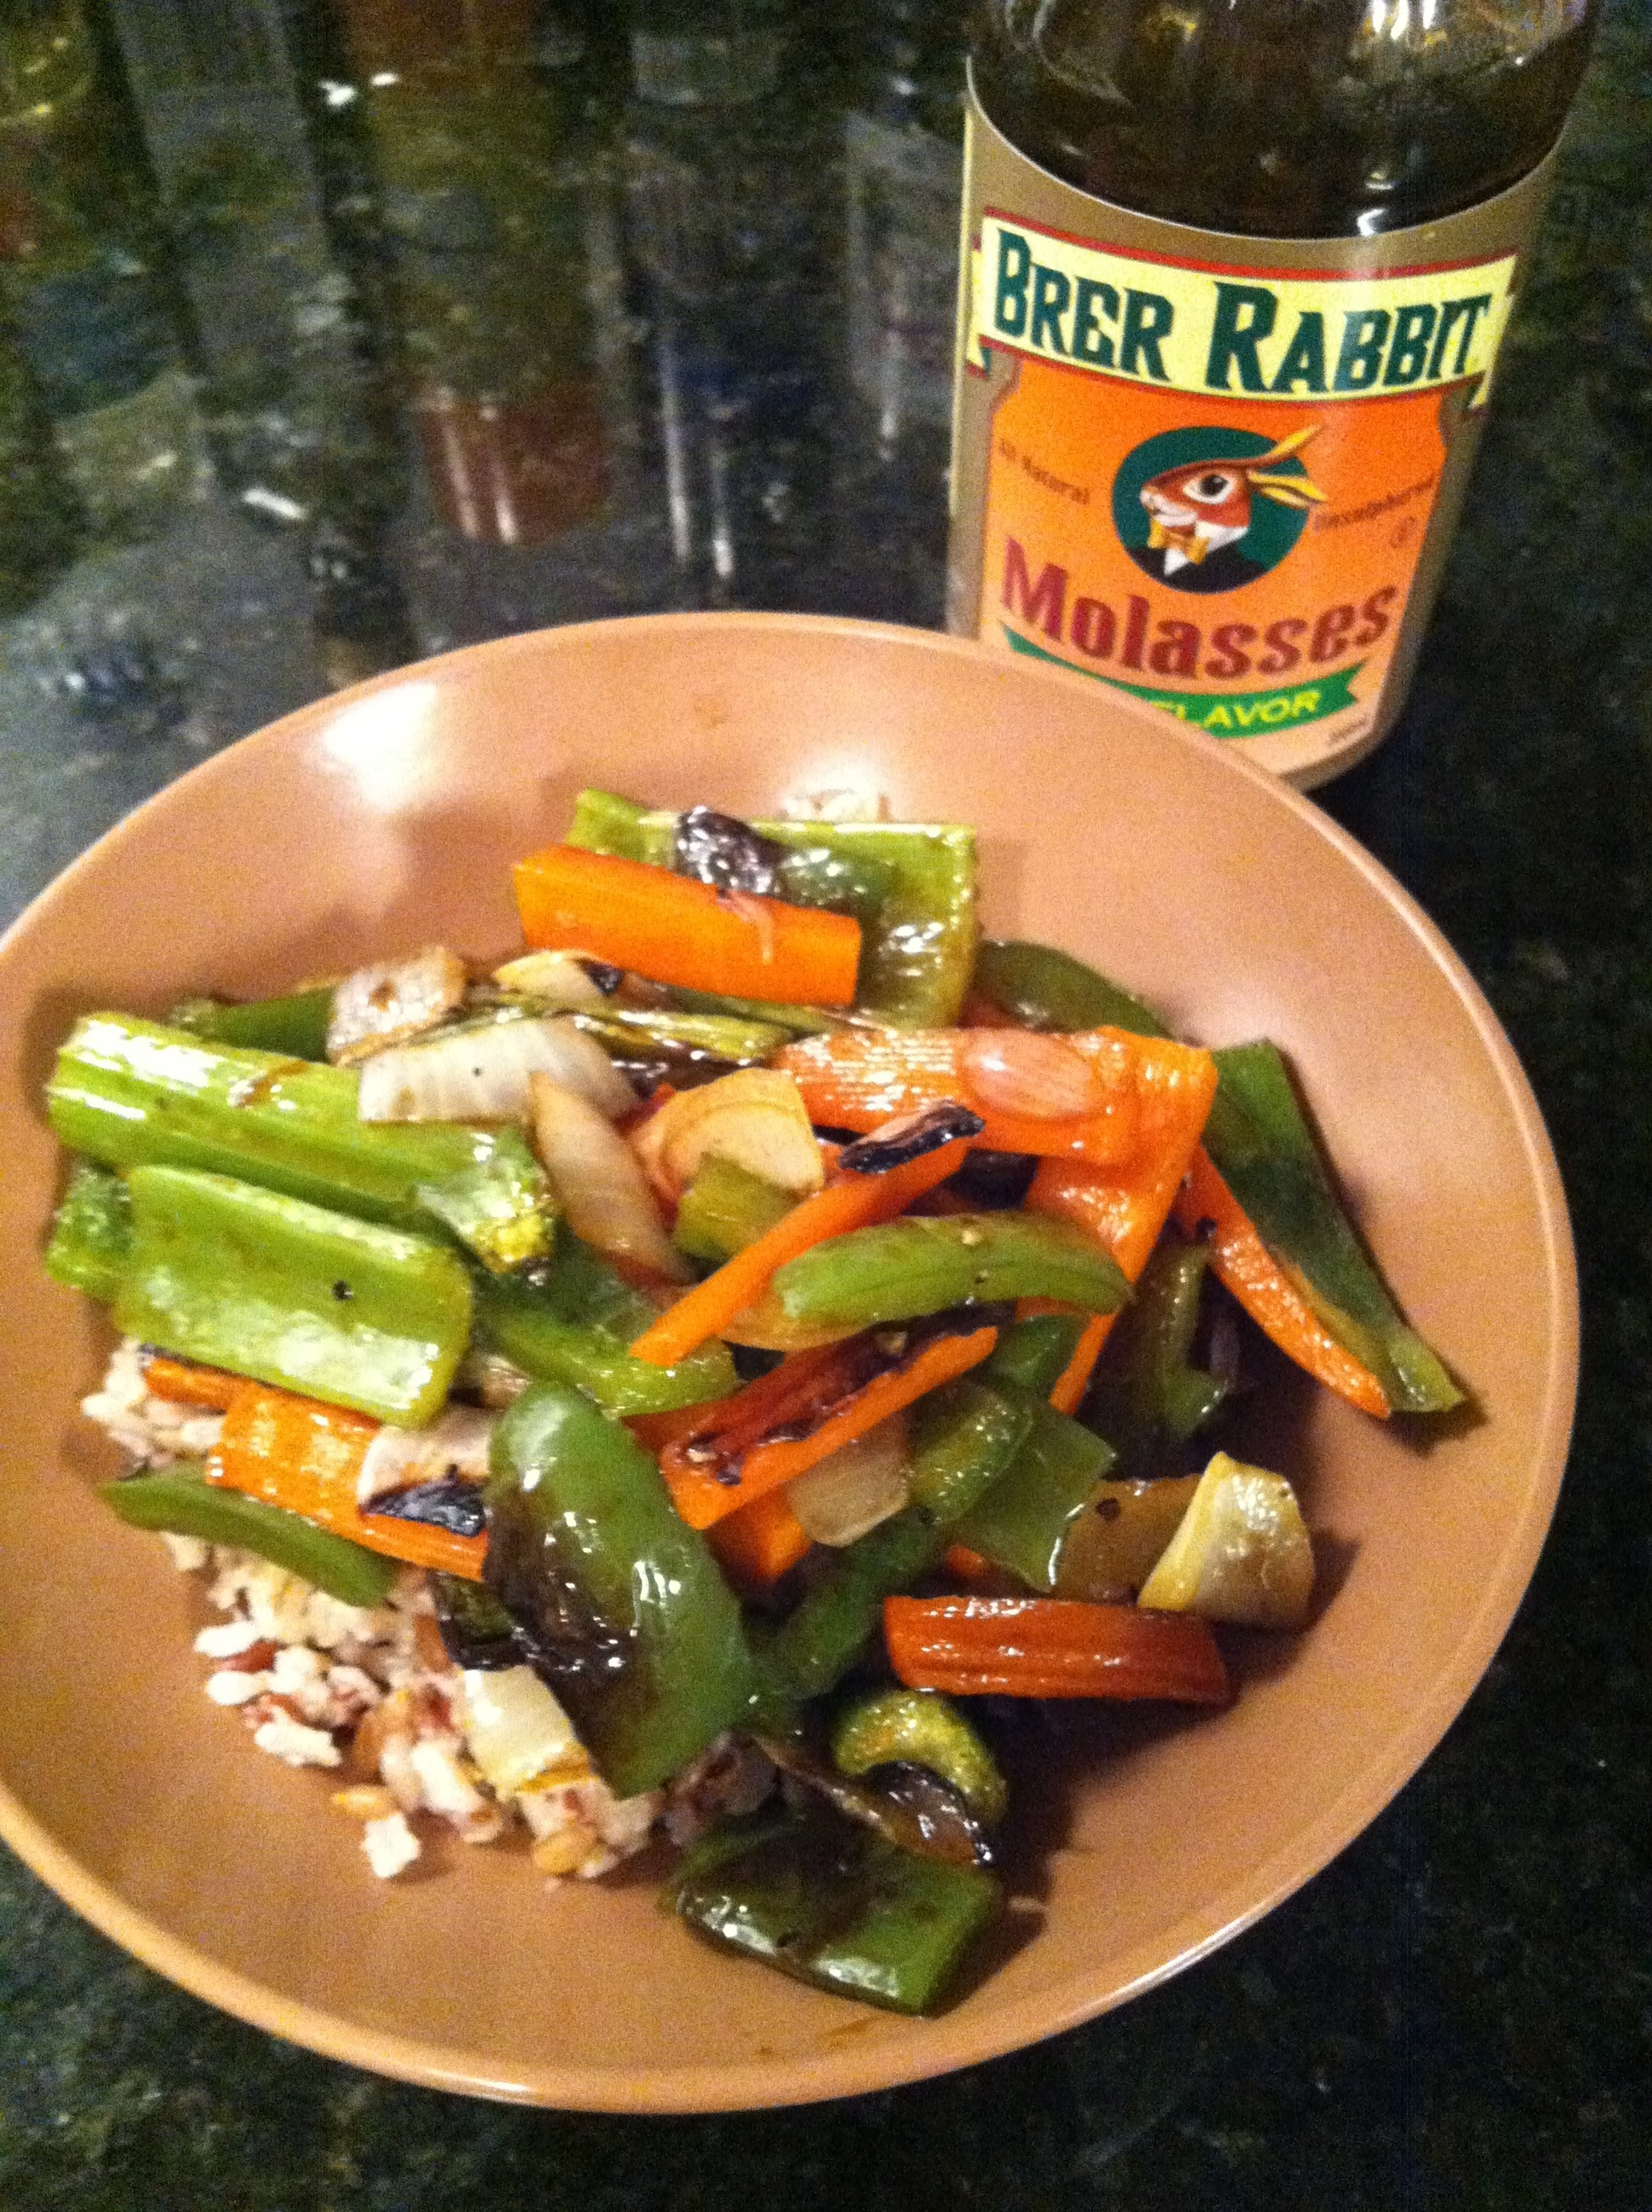 Roasted Vegetables with Brown Rice and Molasses Sauce